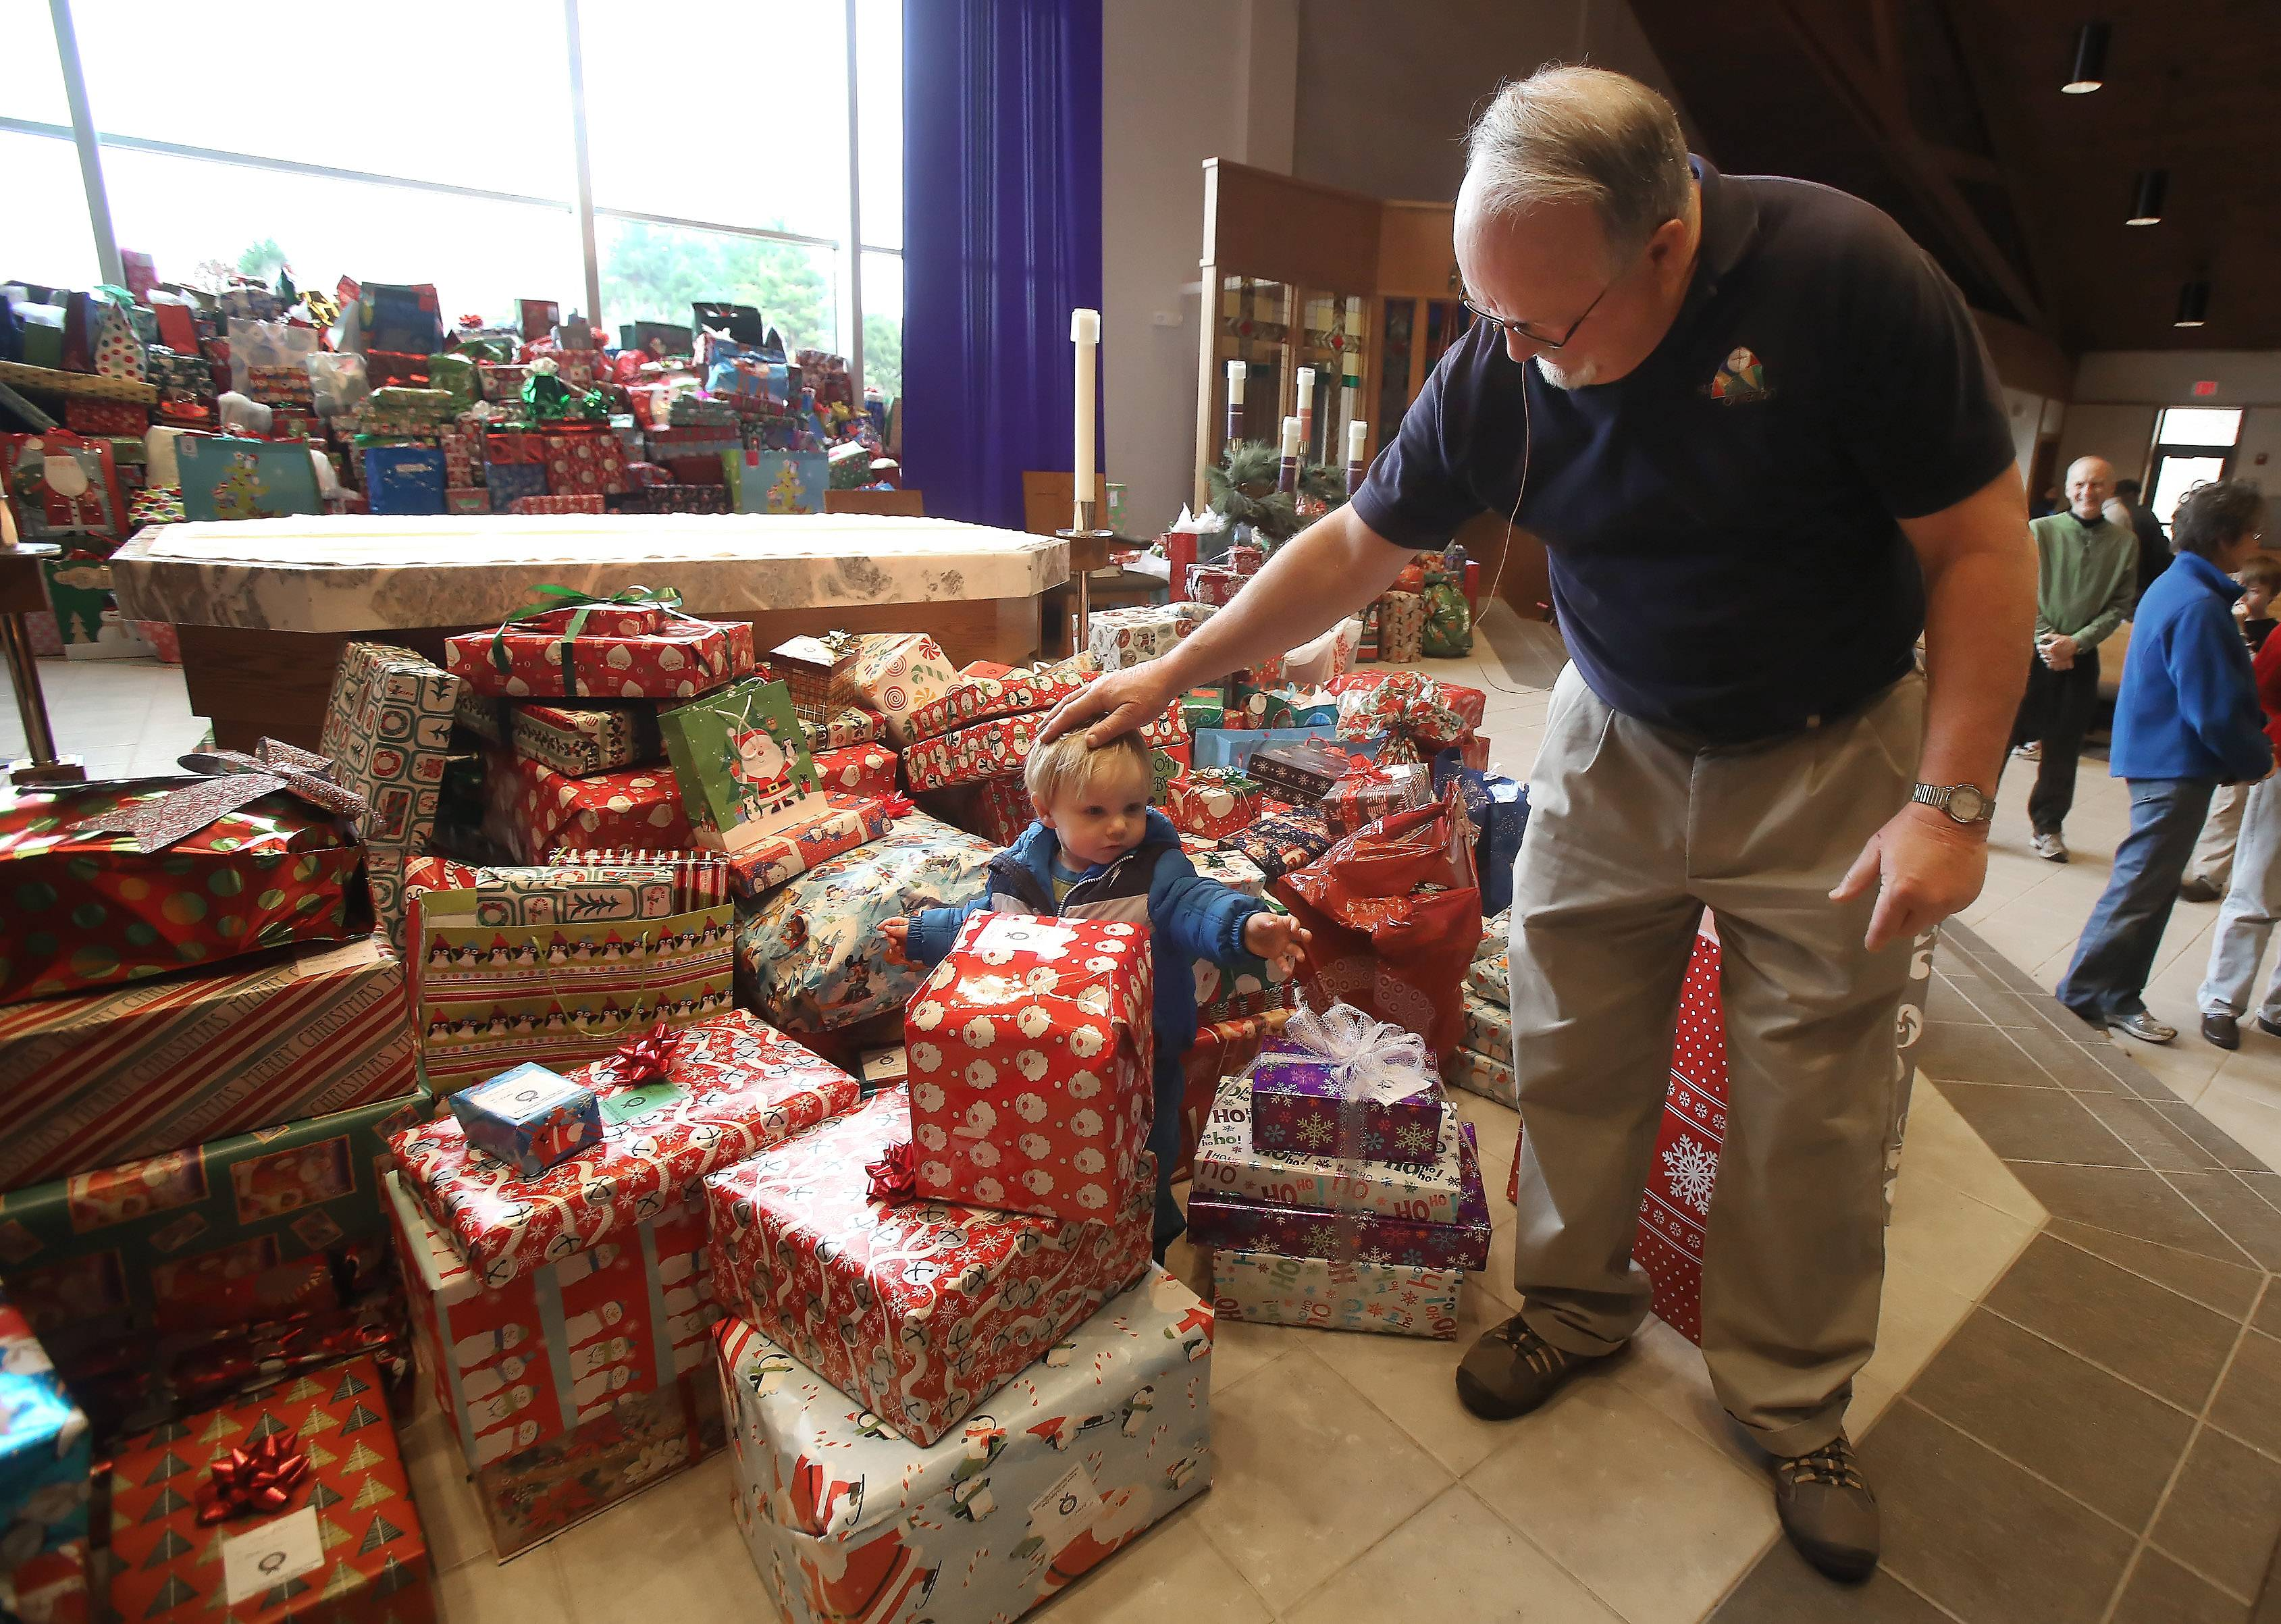 Jim Wogan walks with David Morvig, 2, of Vernon Hills as they examine gifts donated during Gift Sunday at St. Mary of Vernon Catholic Church in Indian Creek. The church was expected to collect gifts for more than 1,000 low-income people for the holidays.